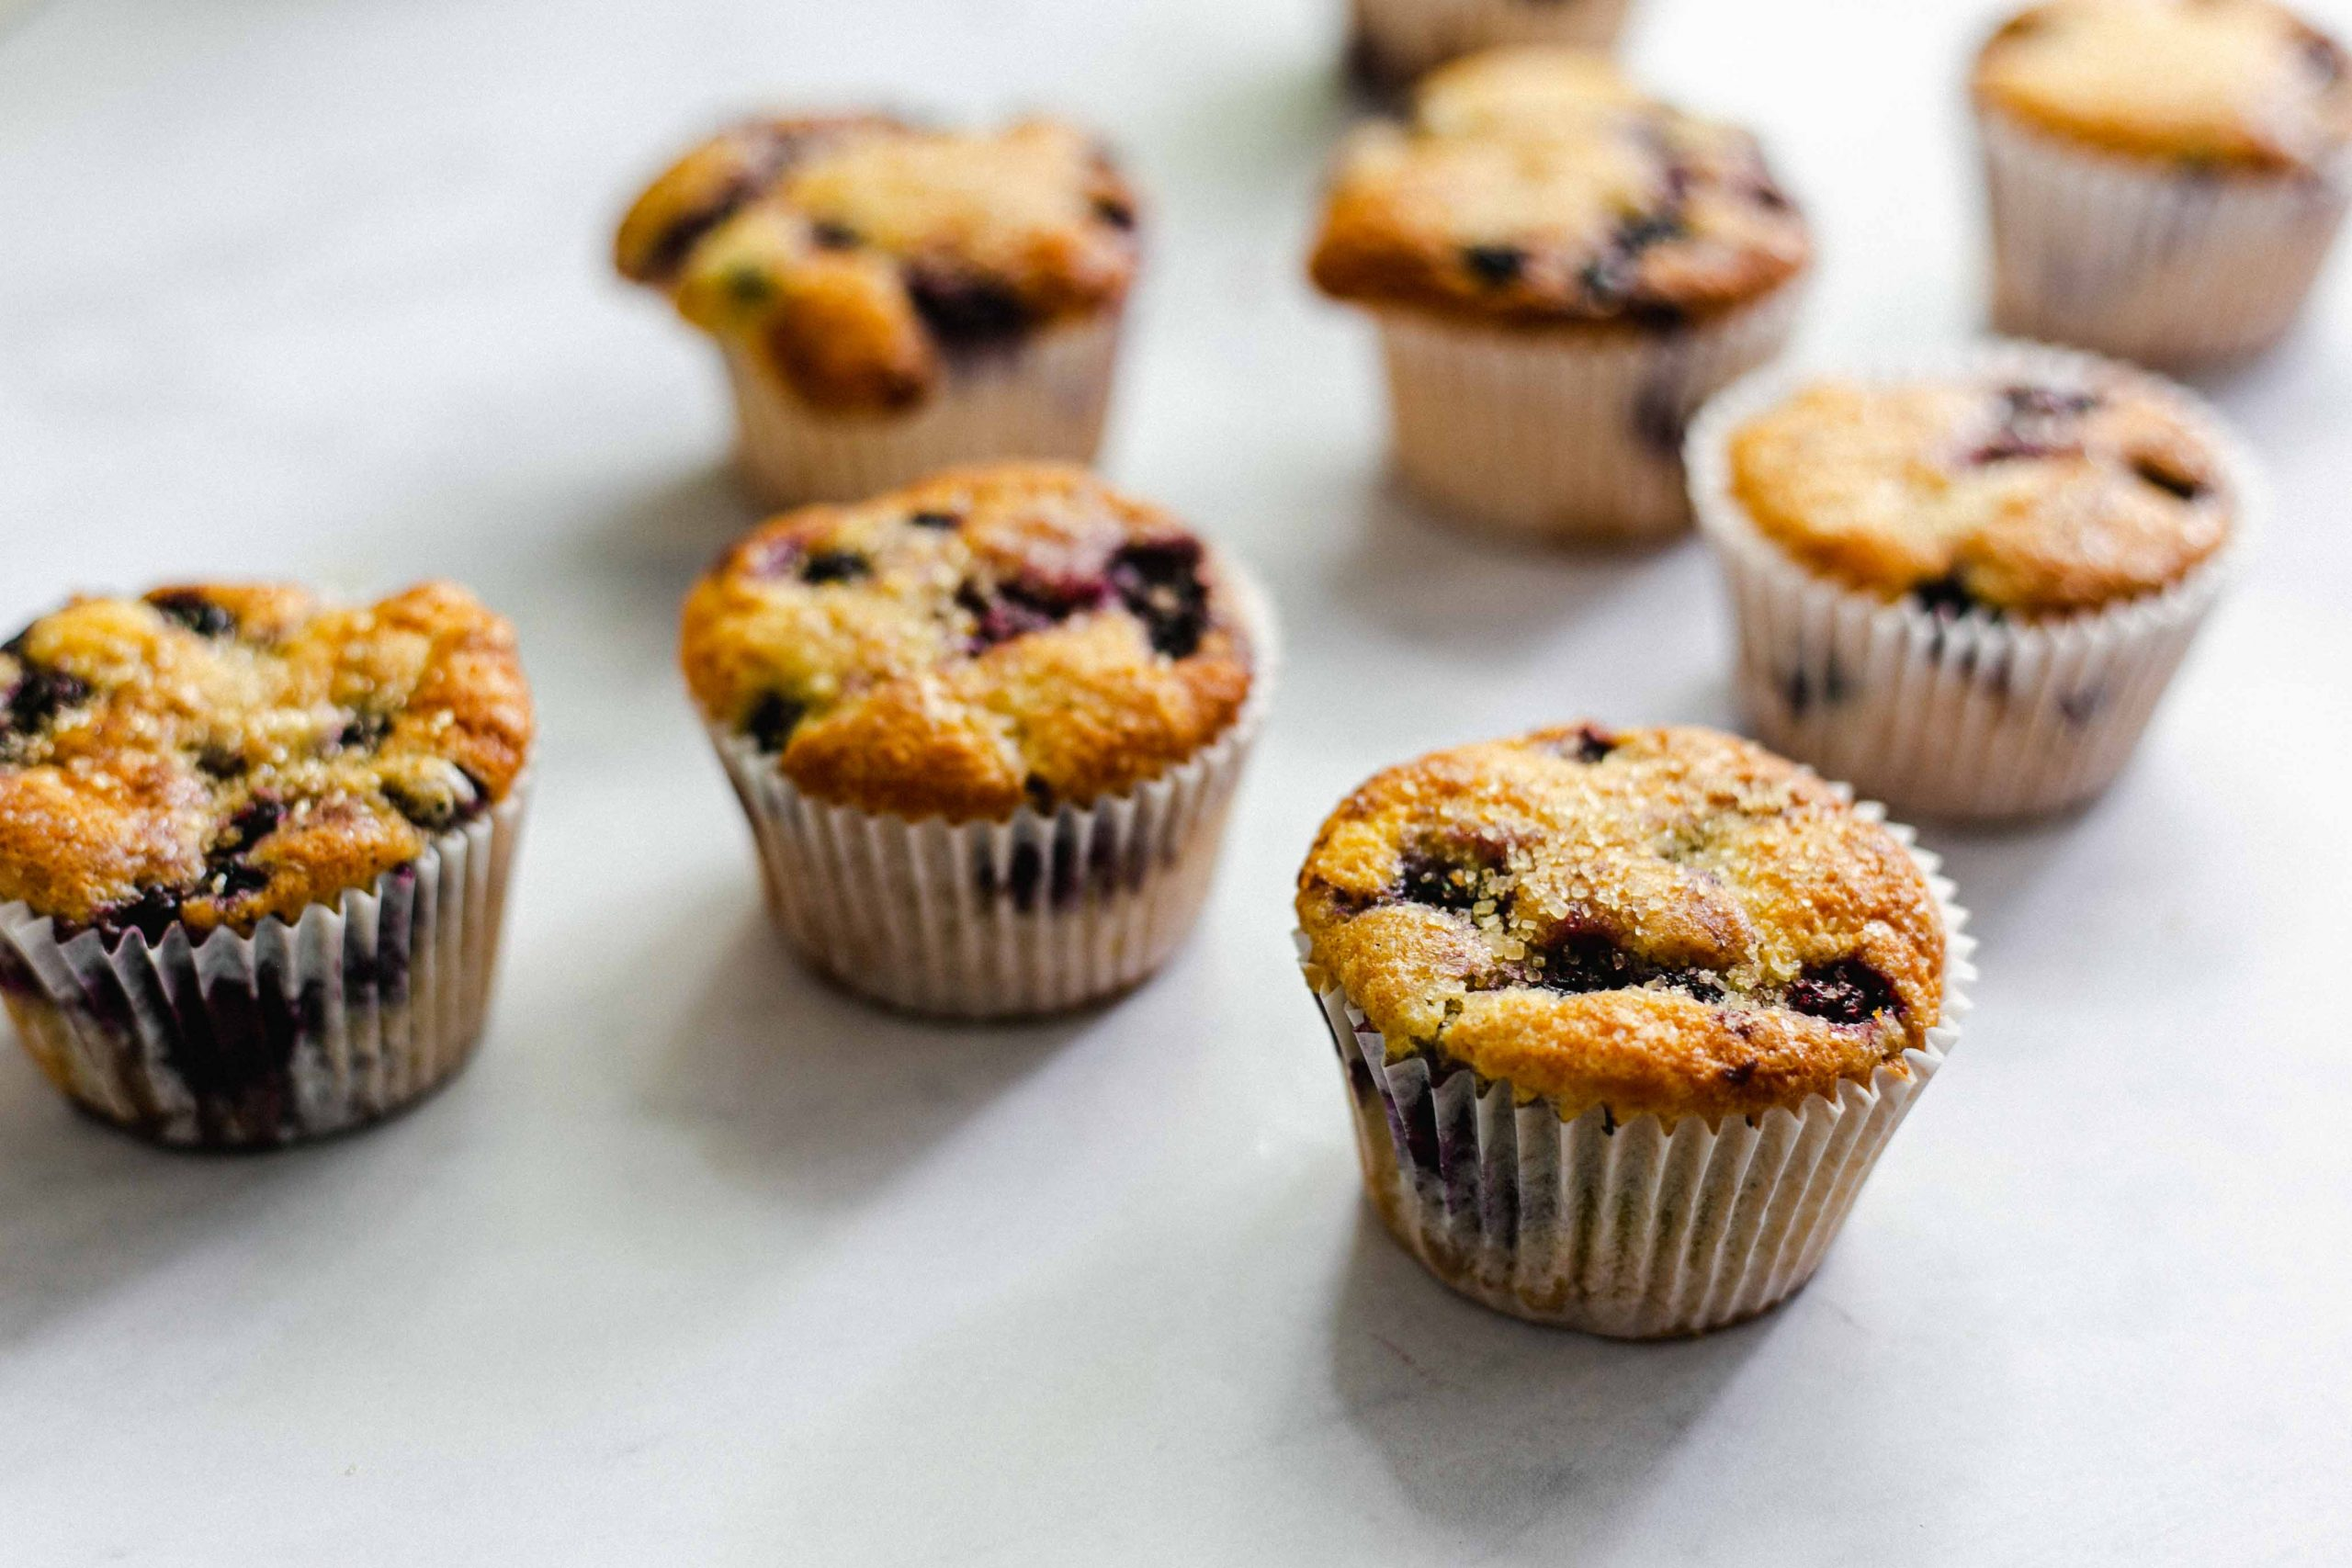 Low FODMAP blueberry and corn muffins